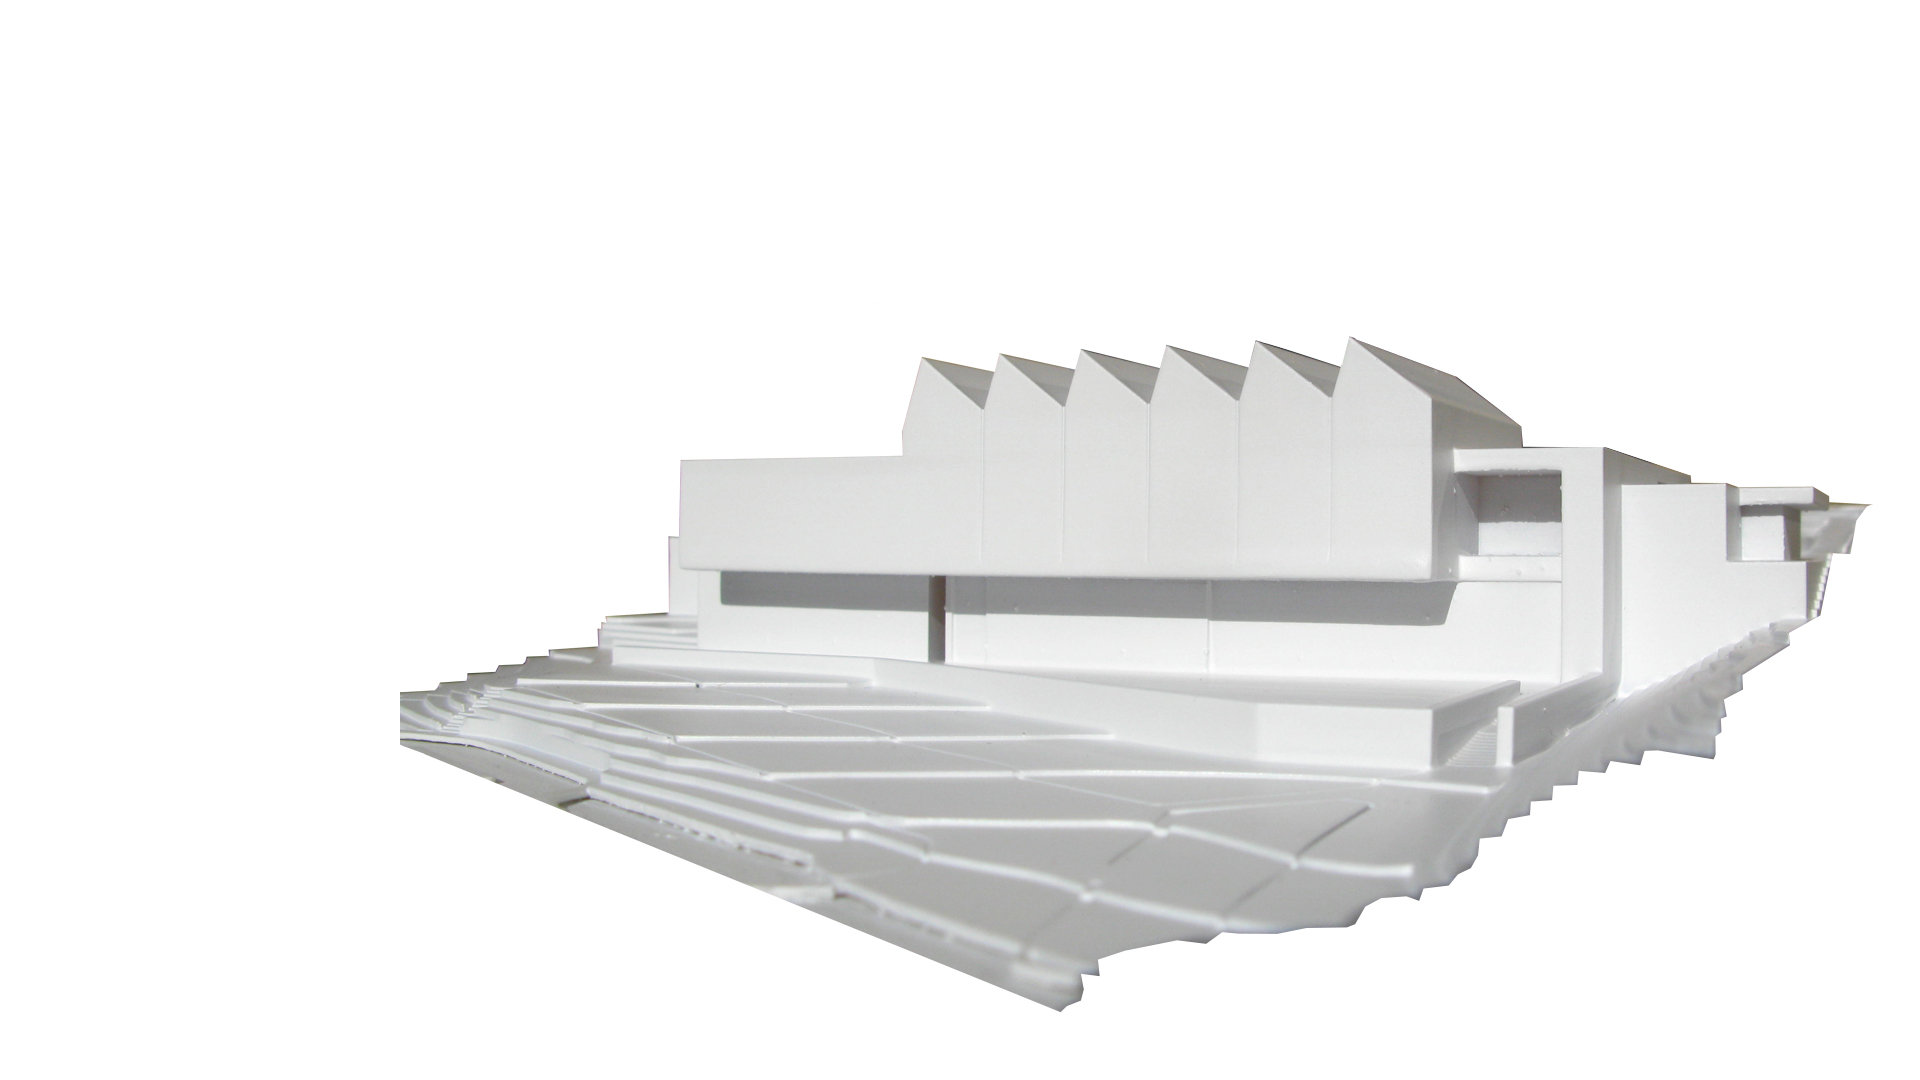 Architectural model main entrance facade of new museum by Keith Williams Architects for lwl-freilichtmuseum Detmold invited competition